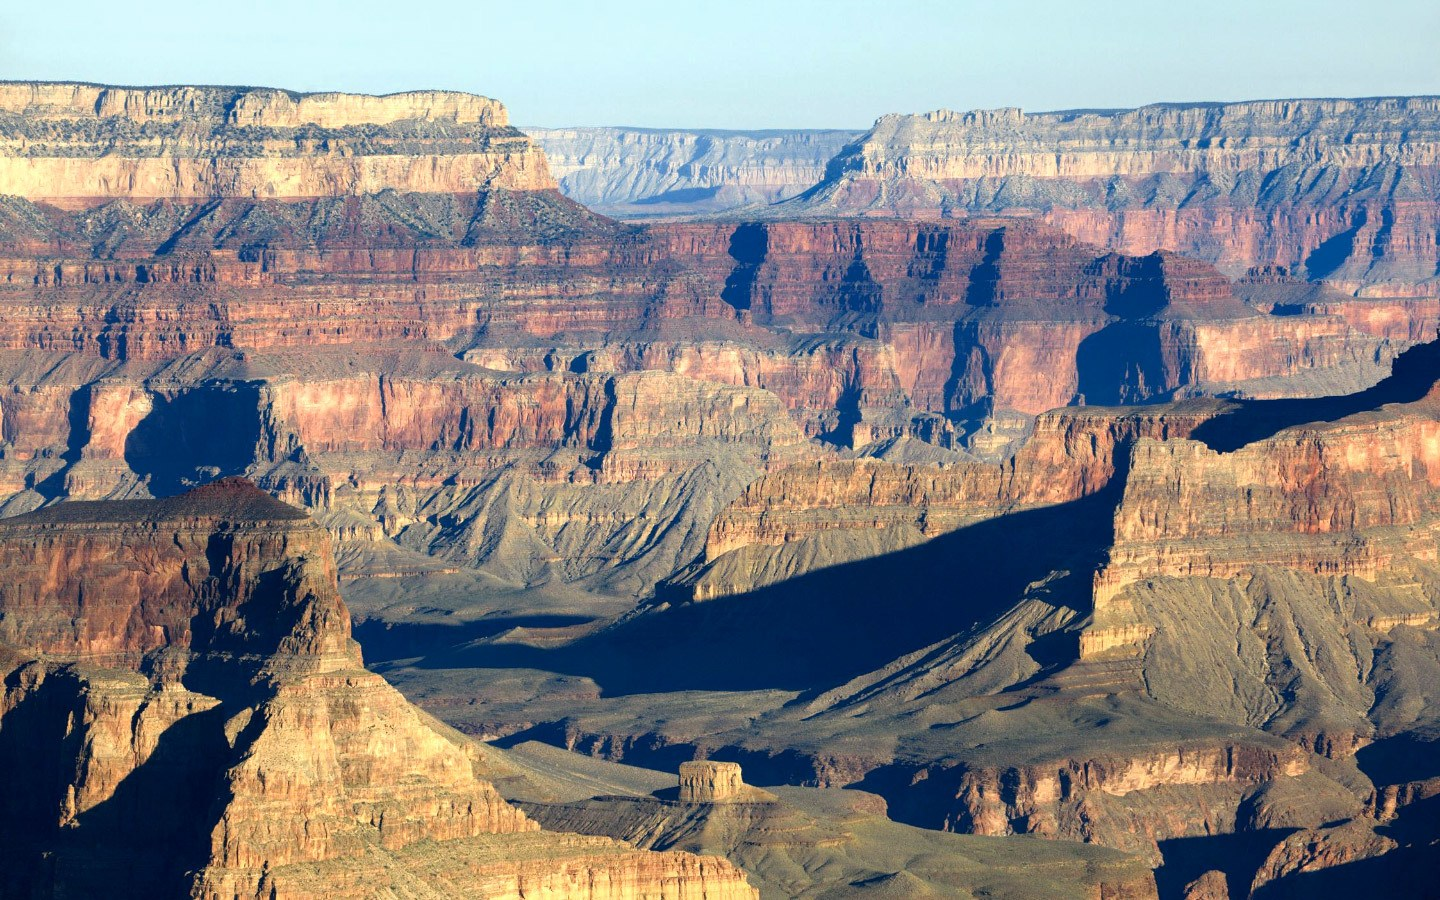 The Grand Canyon South Rim from the Desert View Drive